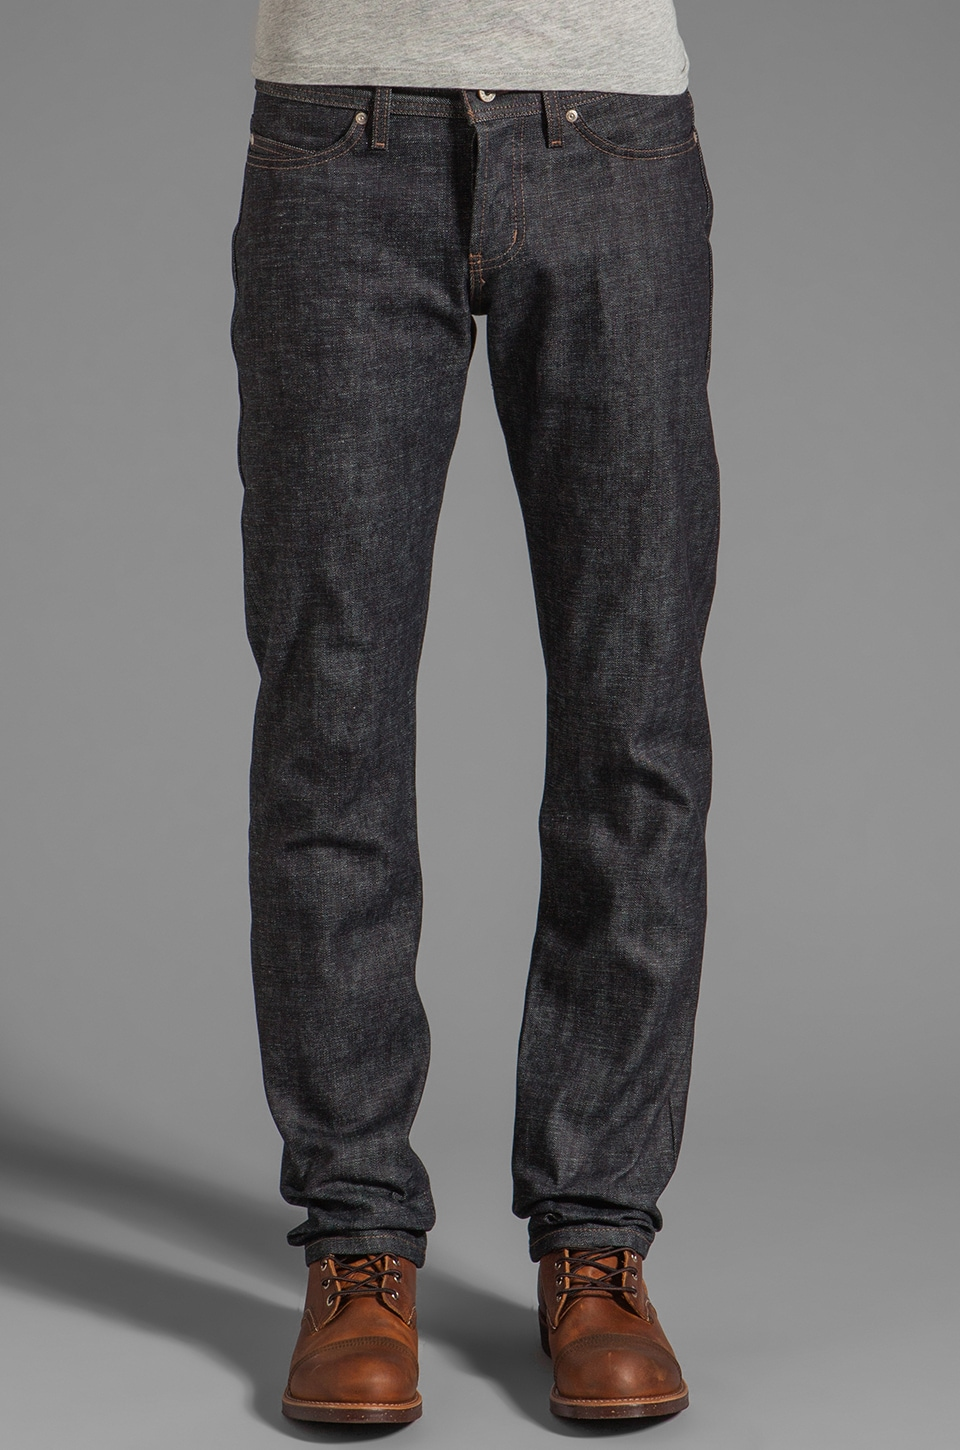 Naked & Famous Denim Weird Guy 13 oz in Suvin Selvedge